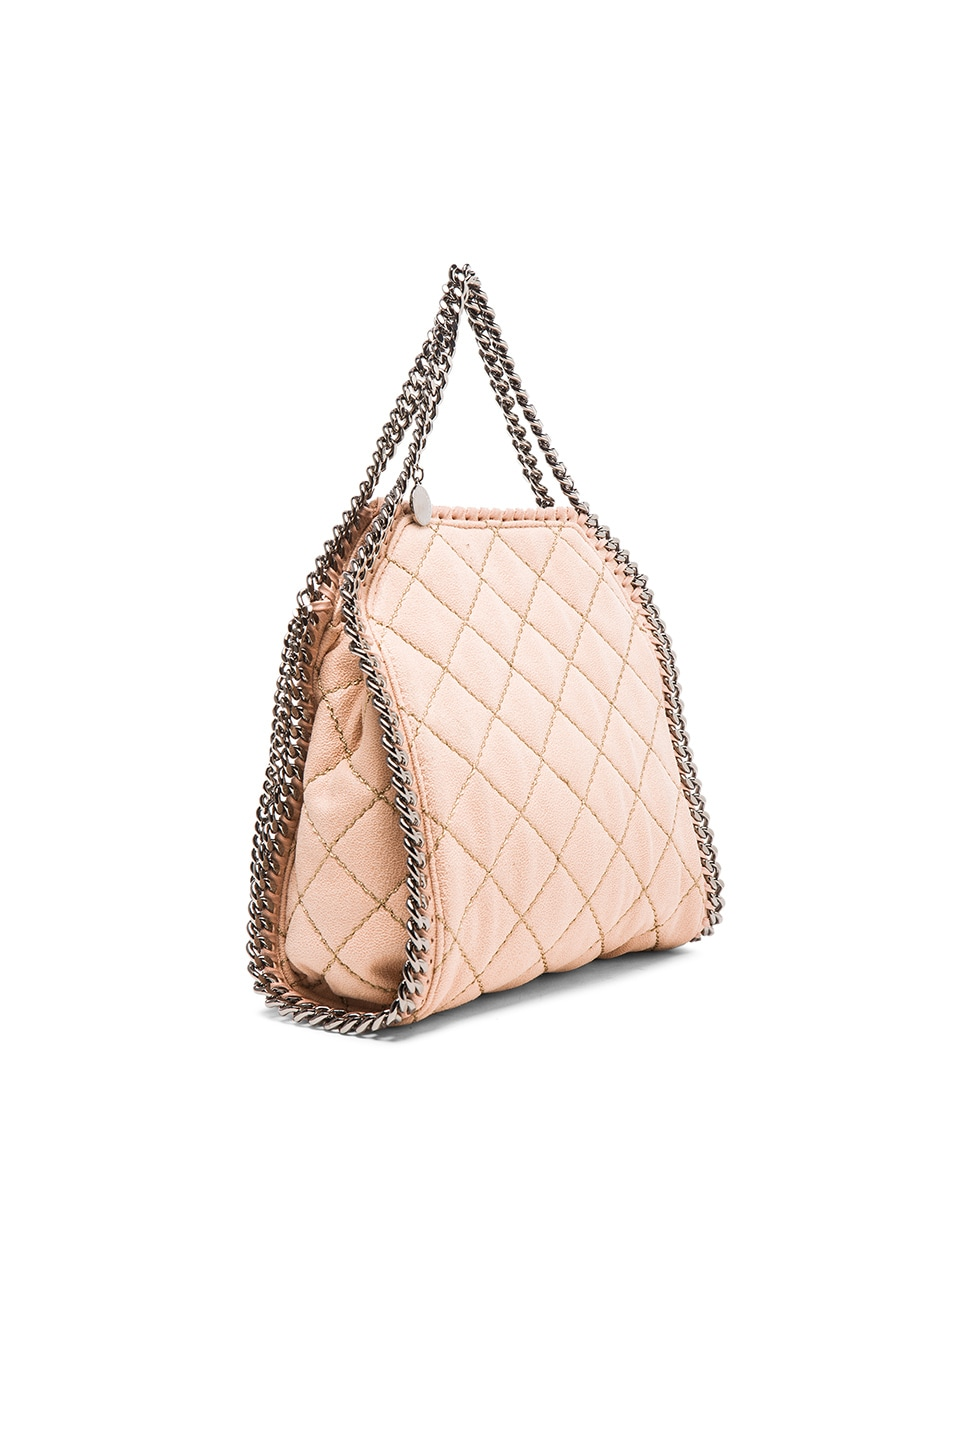 dab8404138 Image 3 of Stella McCartney Falabella Quilted Shaggy Deer Tiny Tote in  Powder